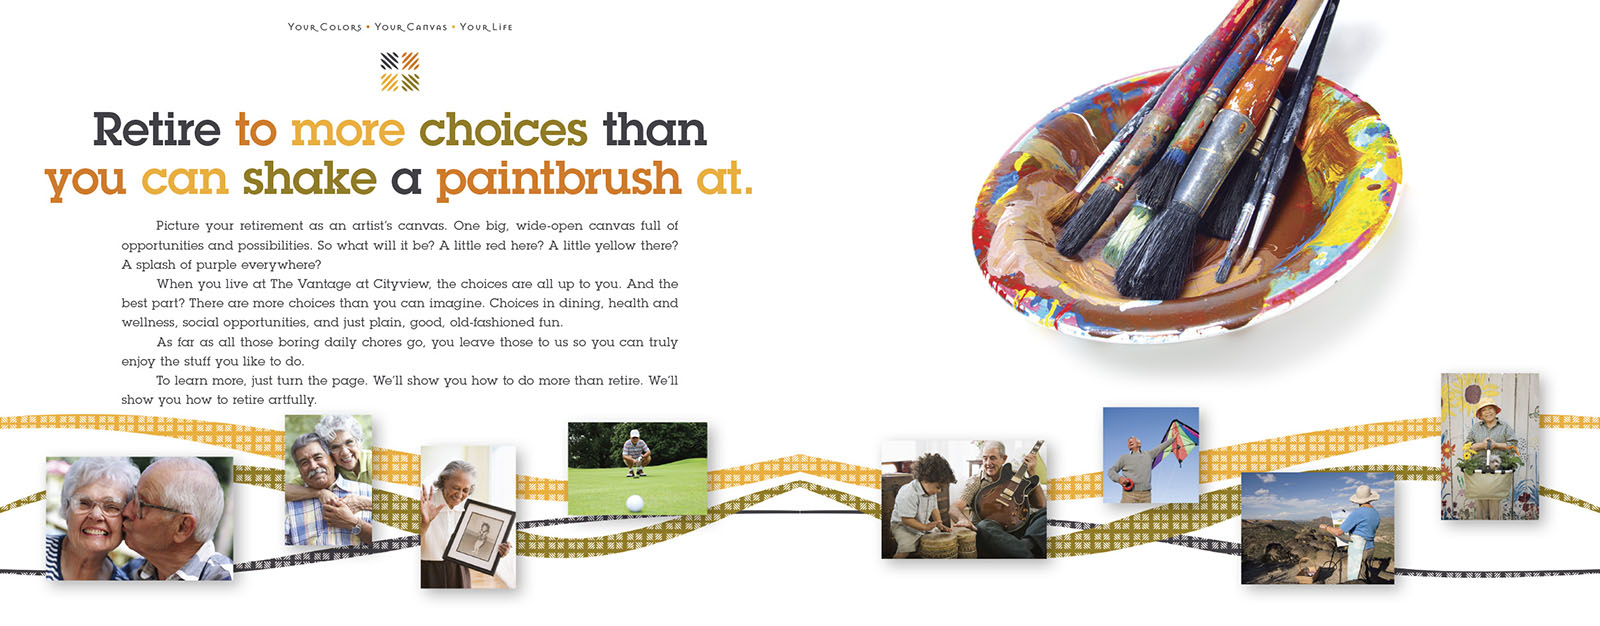 Retirement Community - Brochure Design